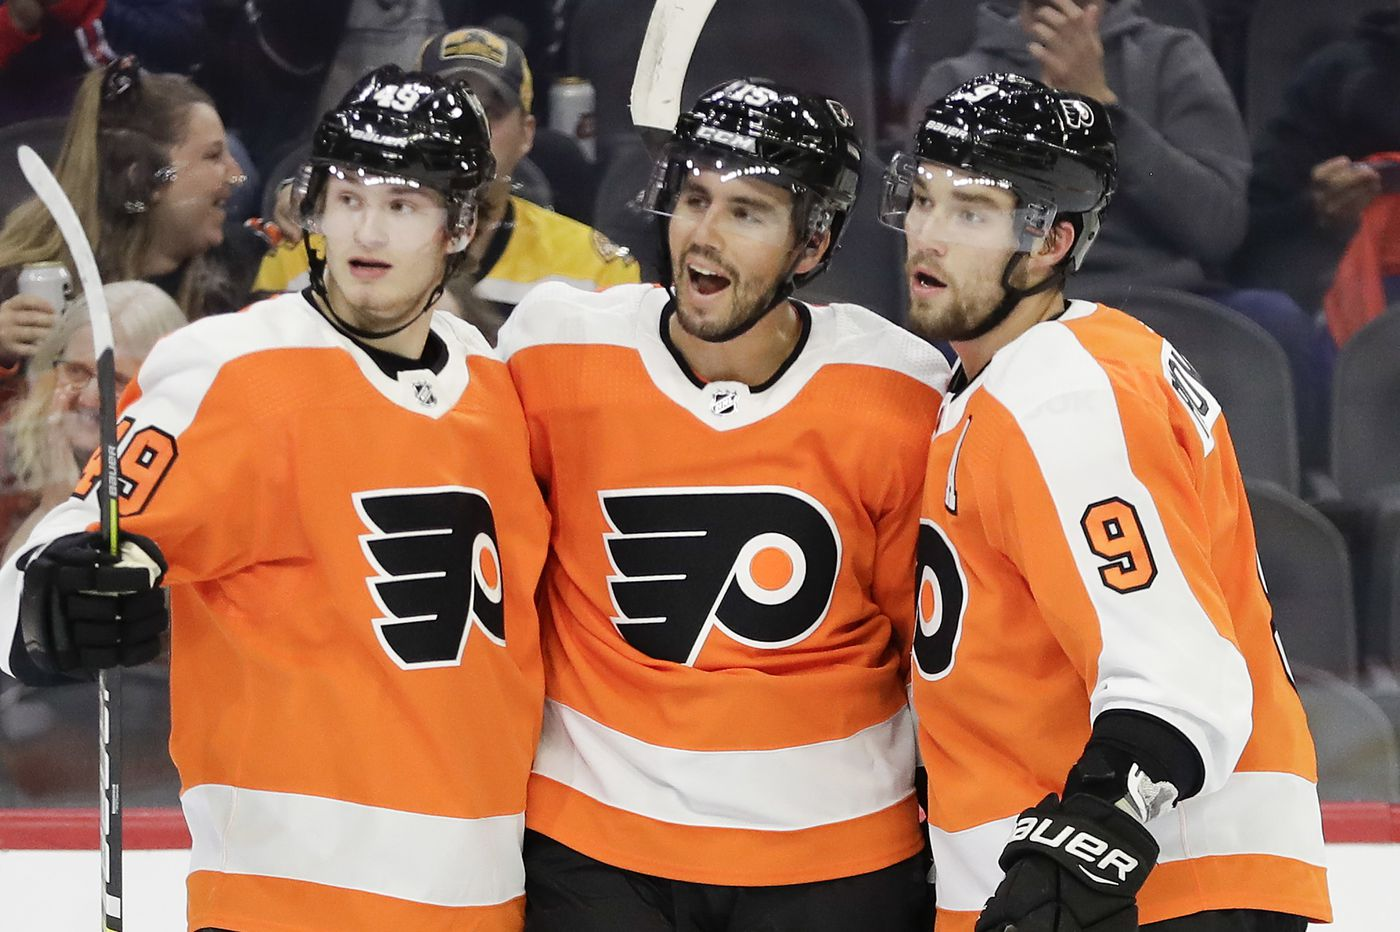 Flyers captain Claude Giroux's message to Joel Farabee on his debut: Don't overthink it